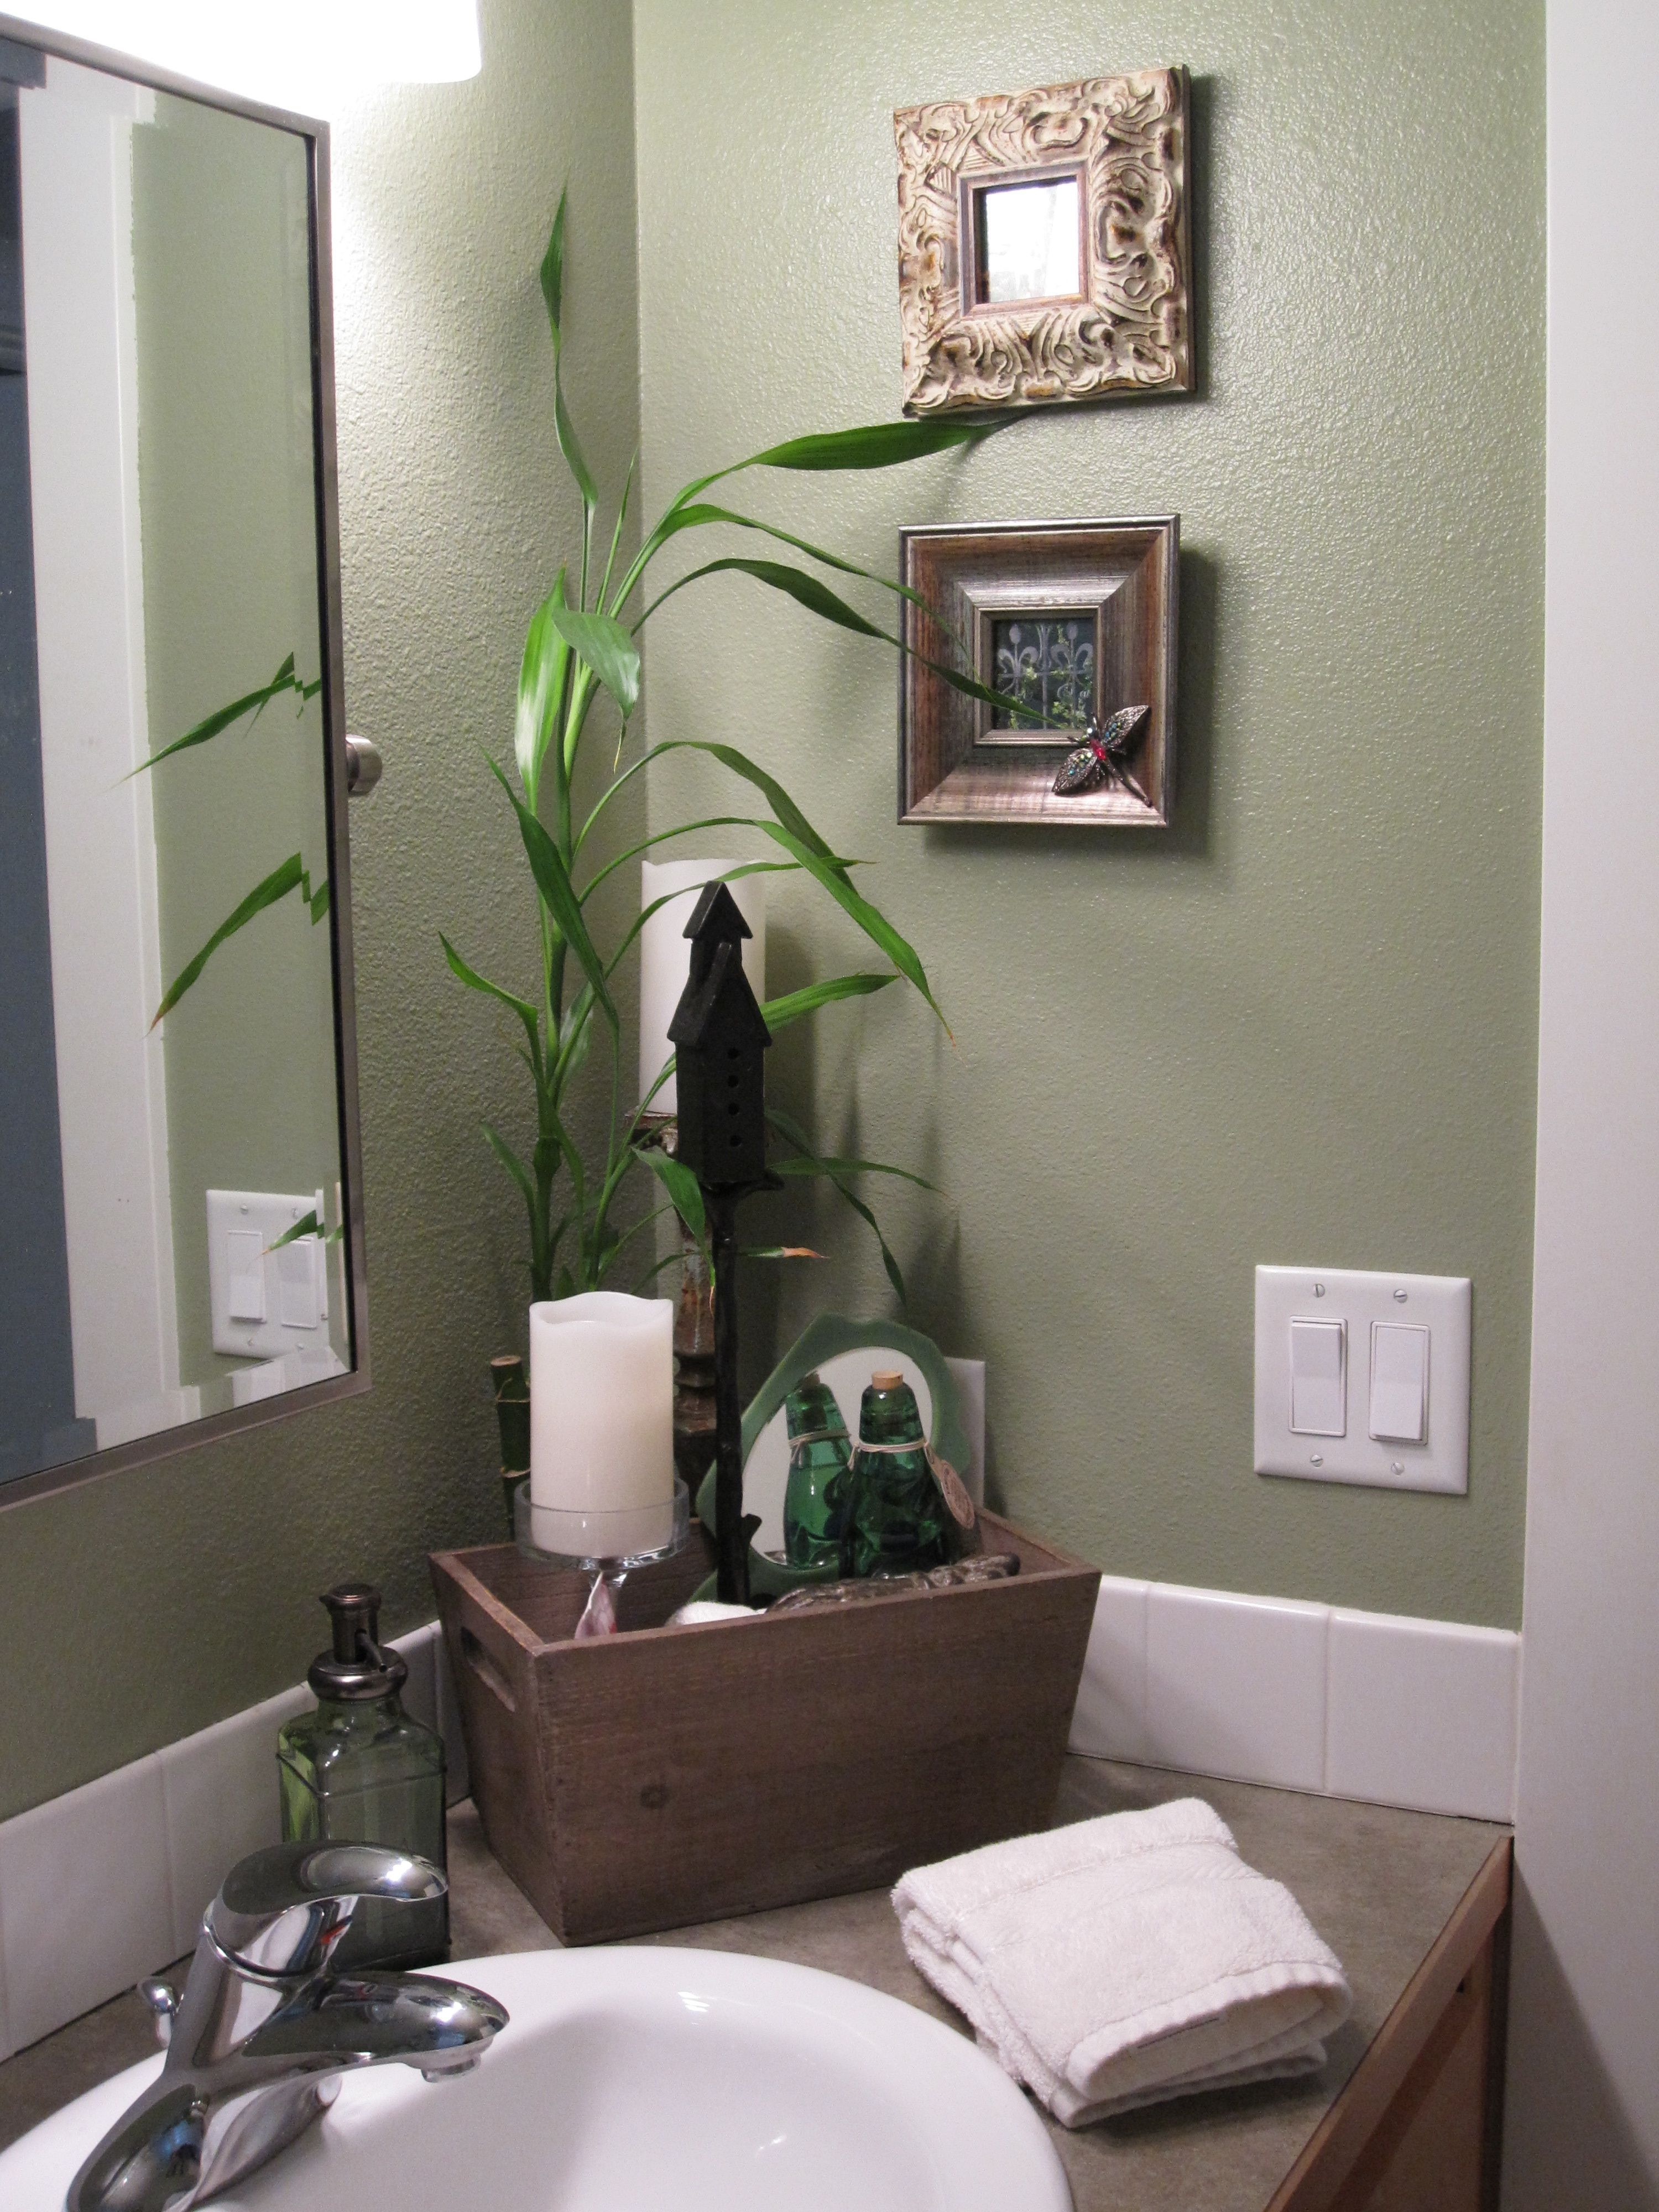 16 Choices What Is The Best Color For Bathroom Walls Should Be Green Bathroom Decor Green Bathroom Bathroom Wall Colors